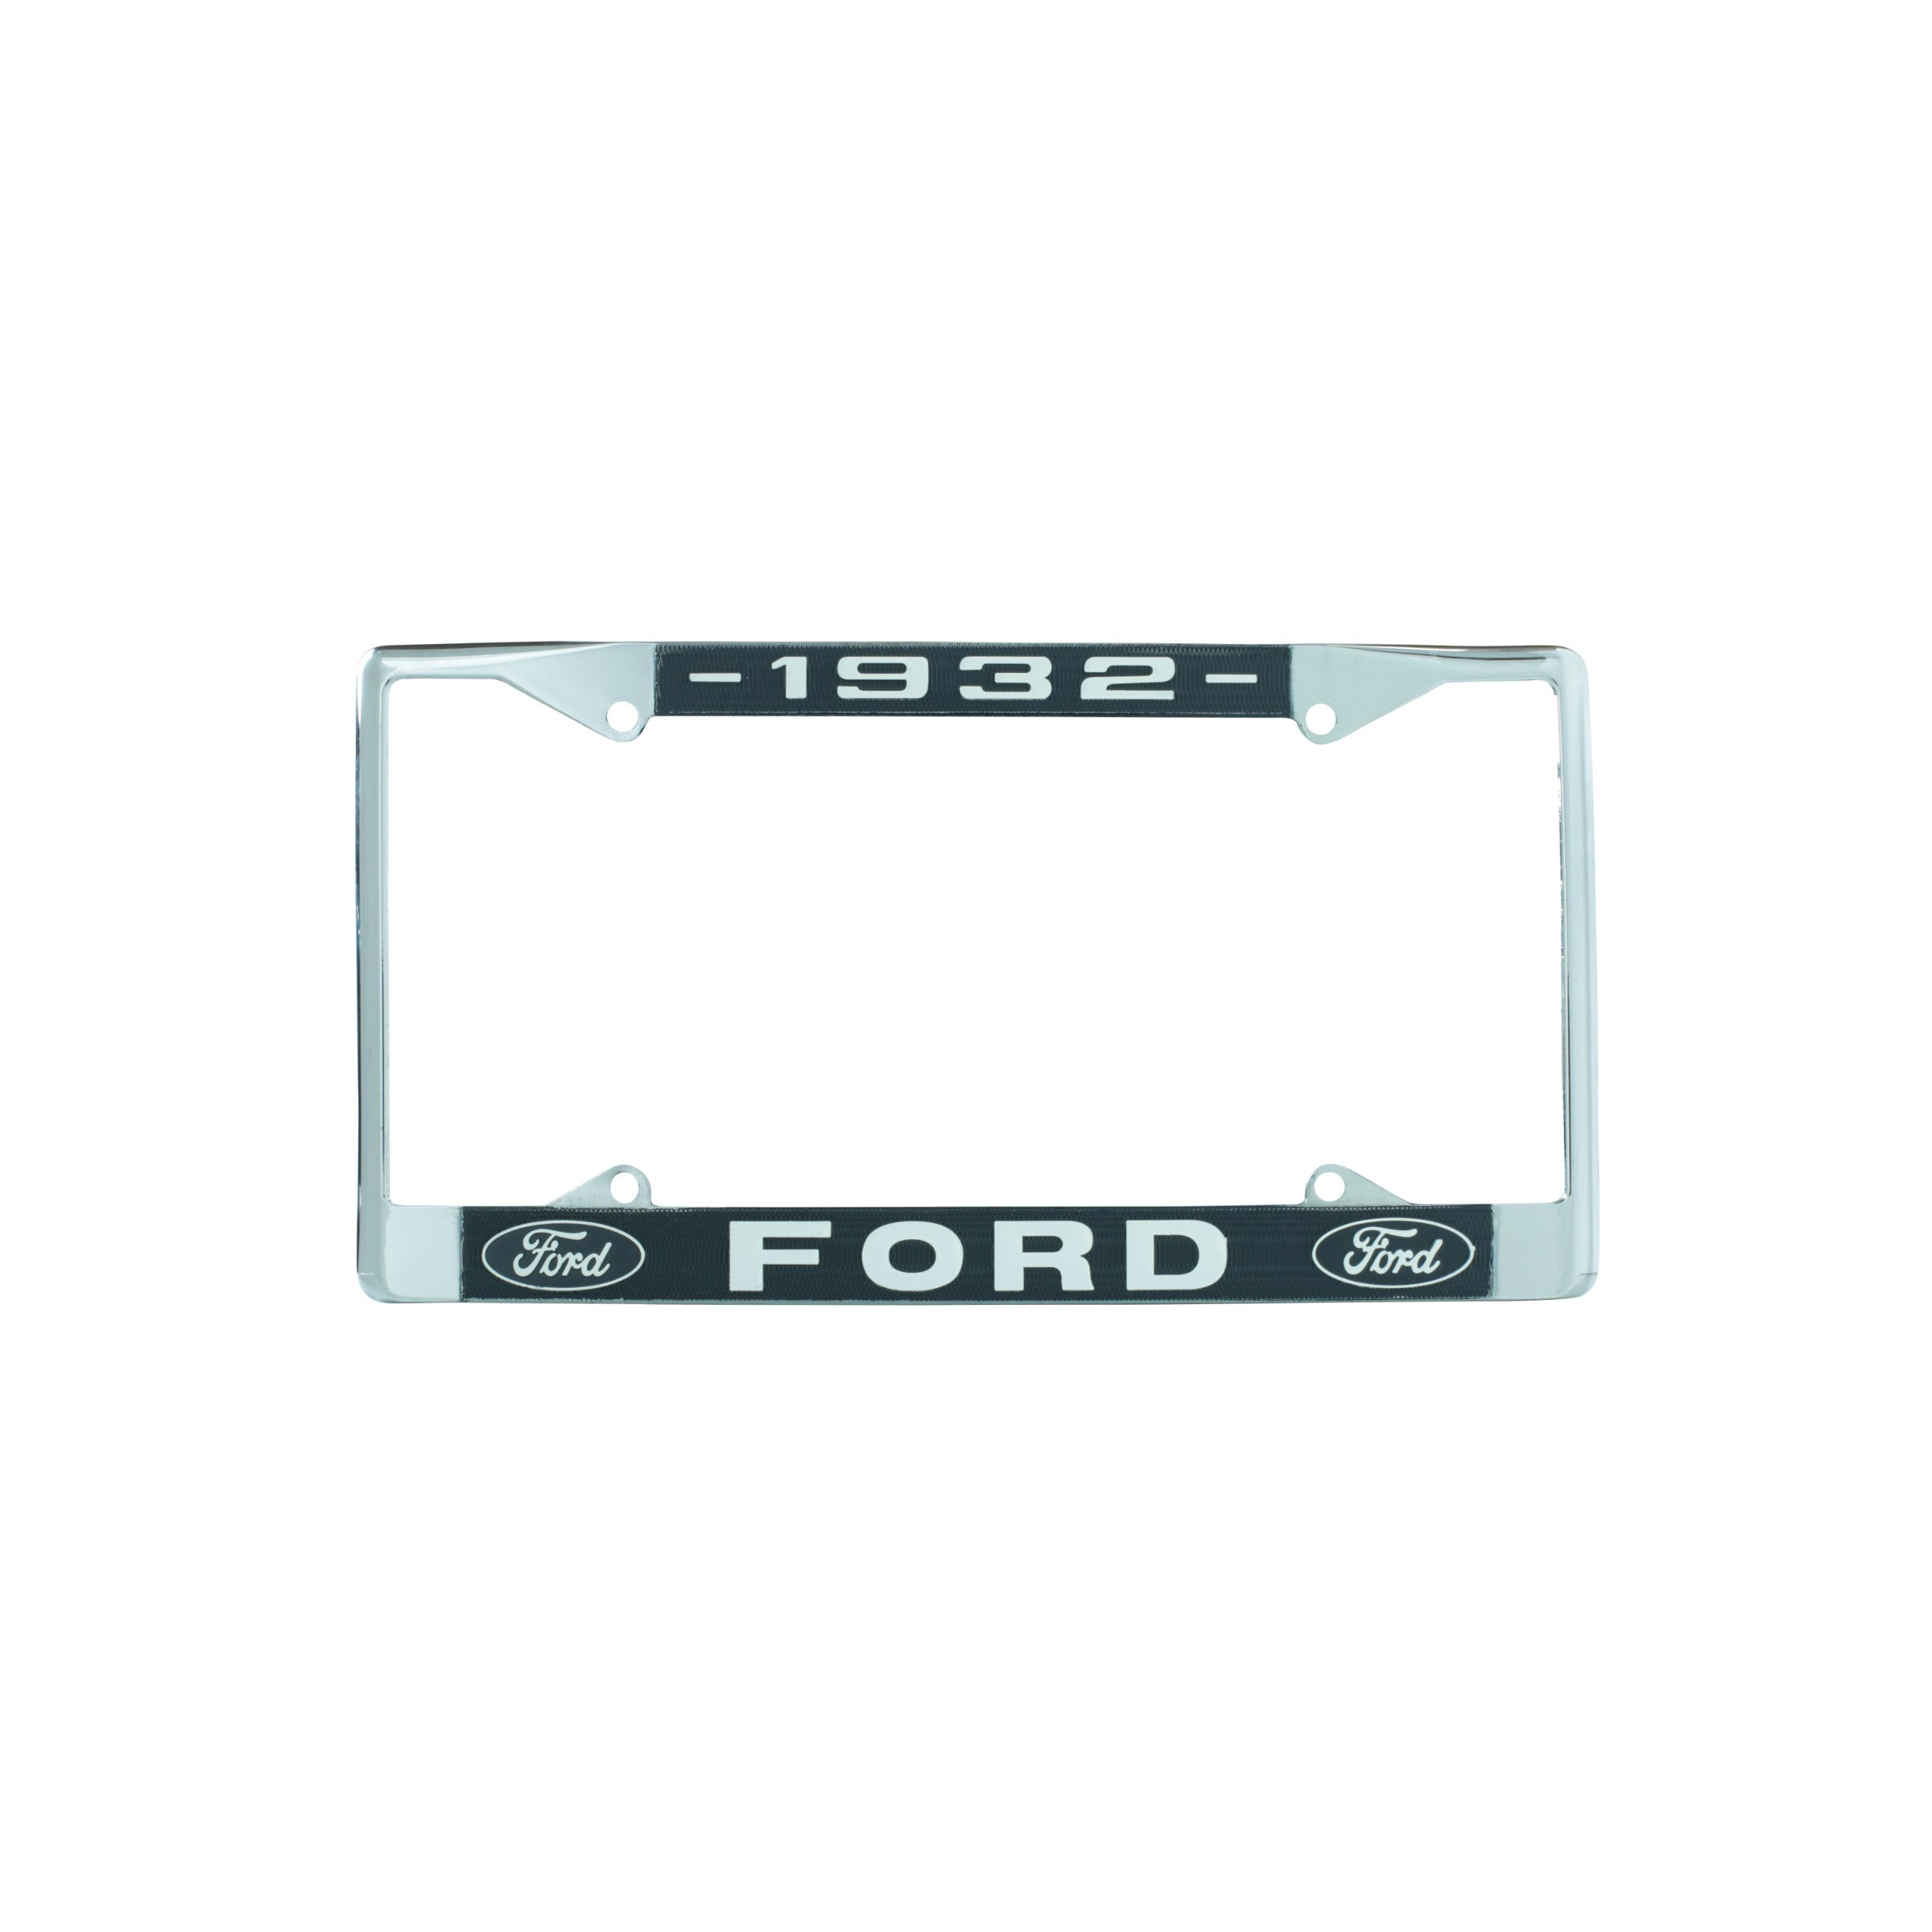 License Plate Frame • 1932 Ford